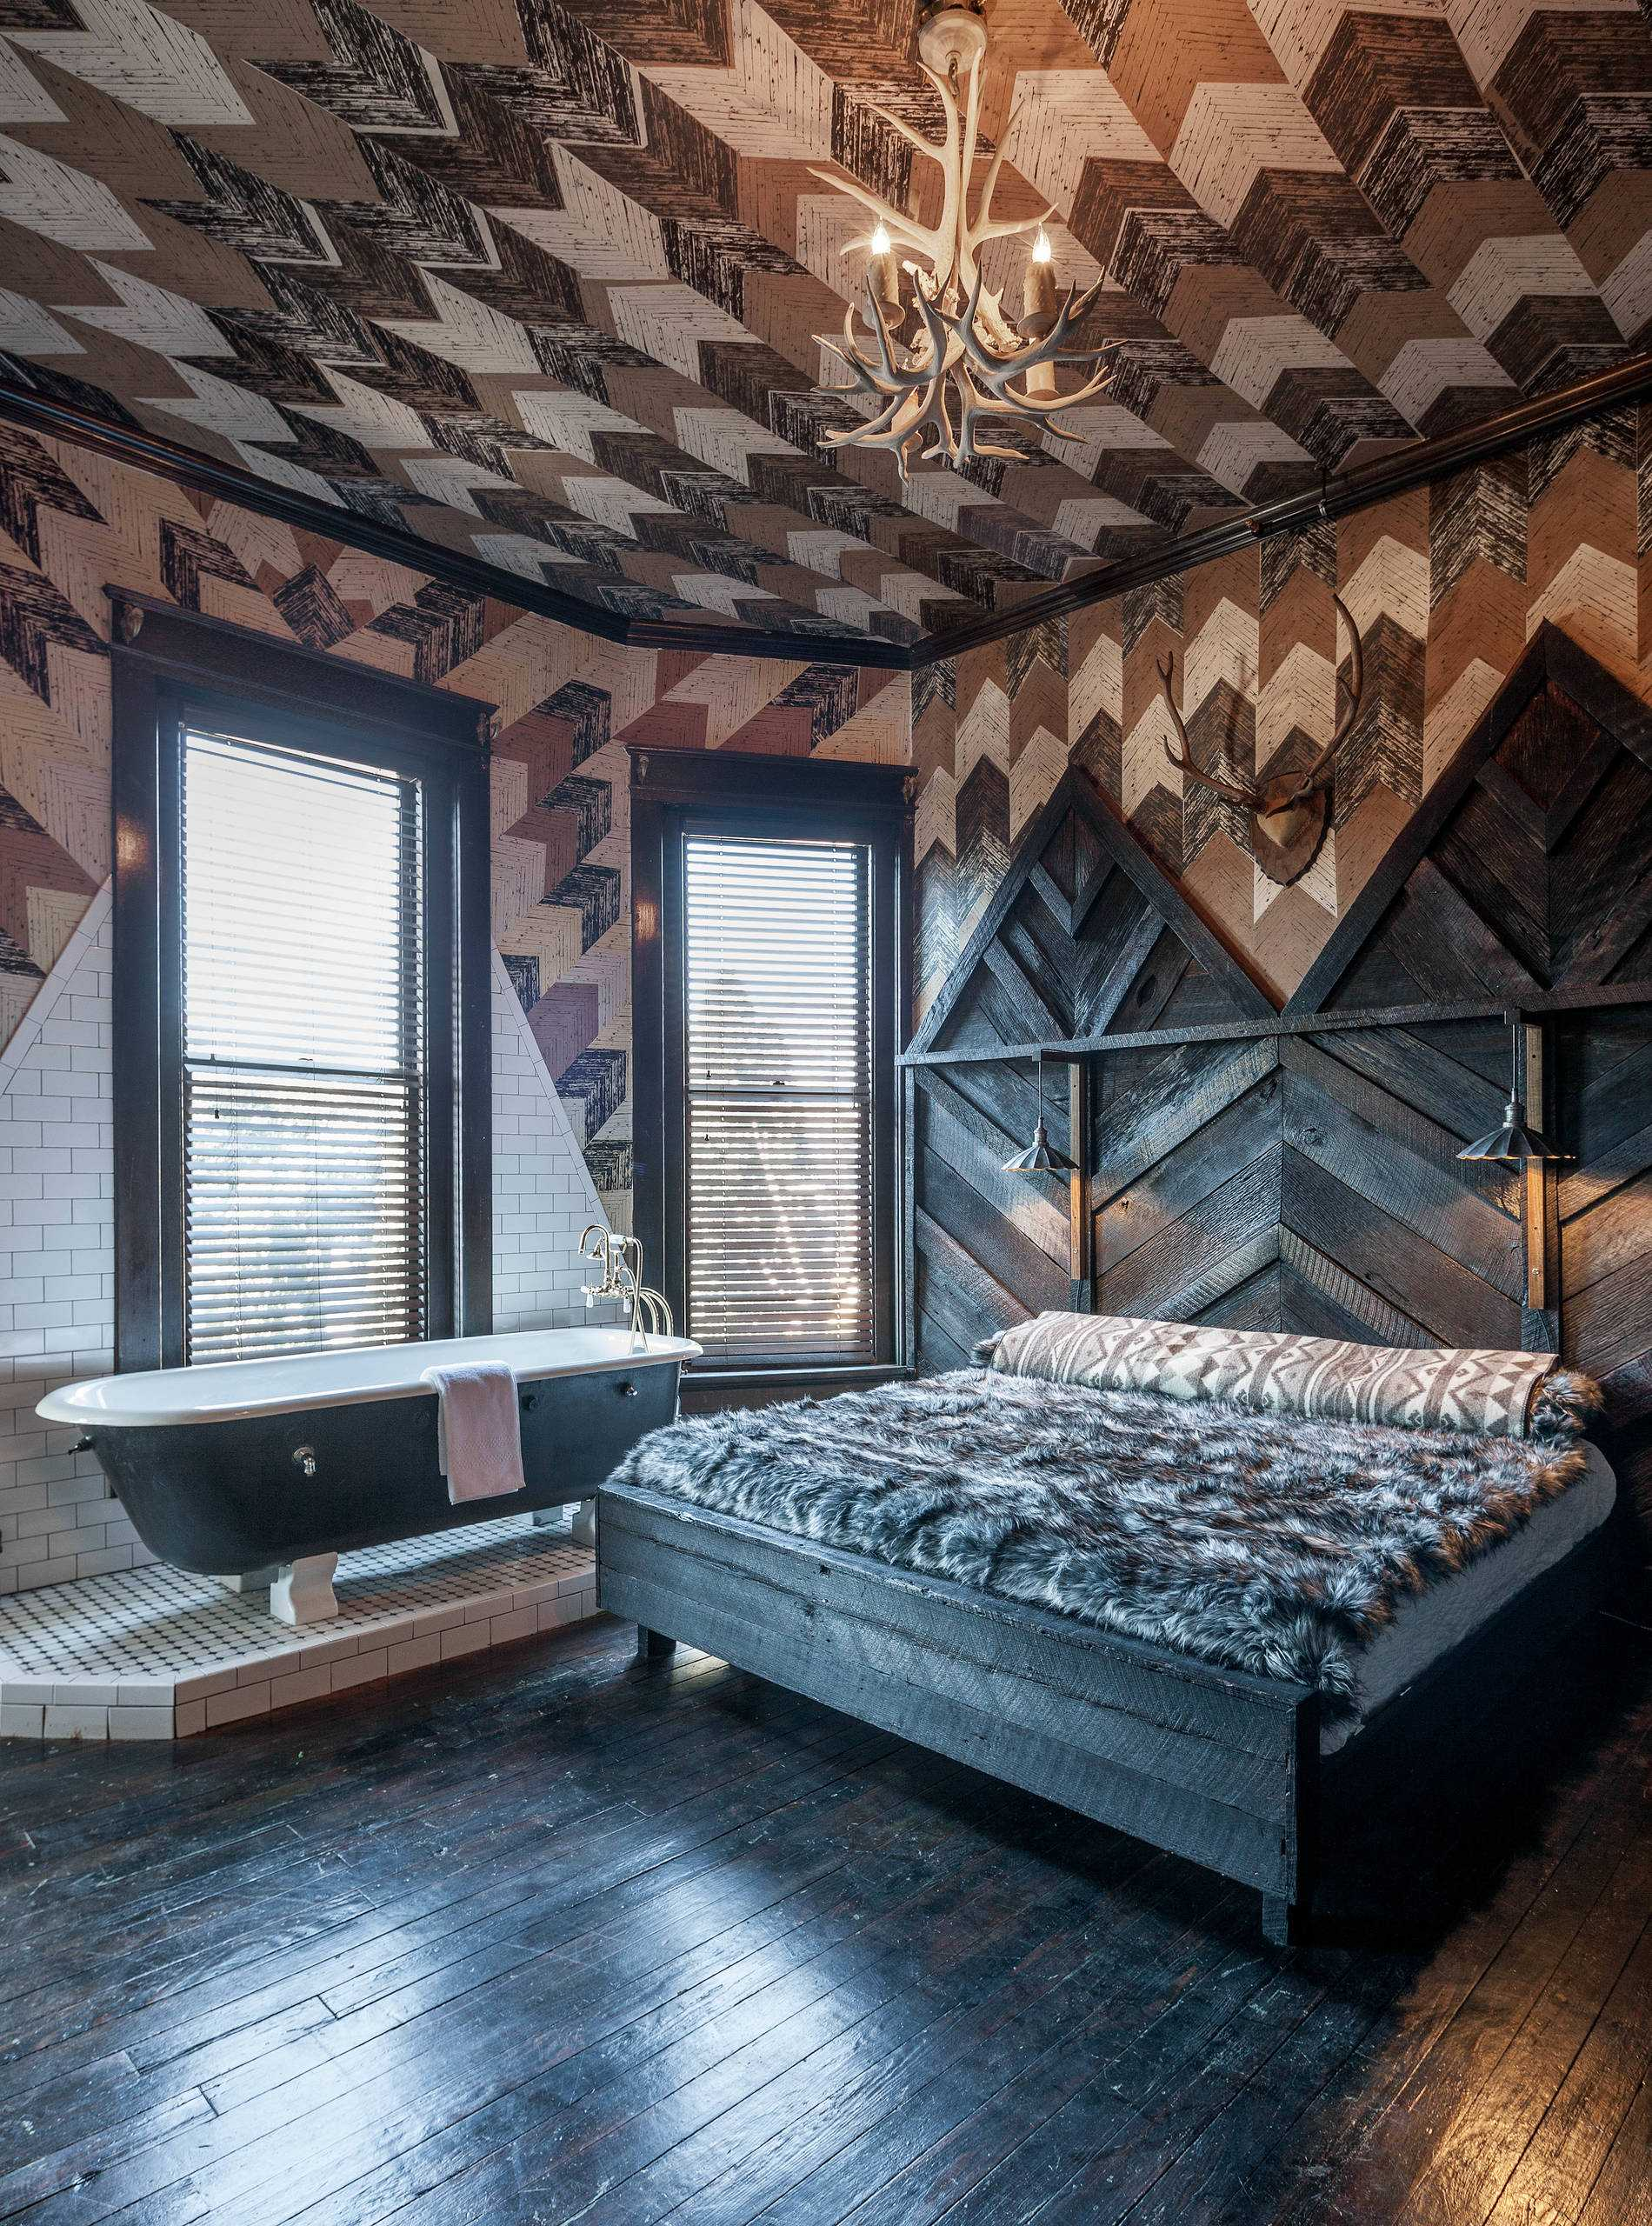 rustic bedroom designs wicked them want urban nashville rooms cowboy source architectureartdesigns